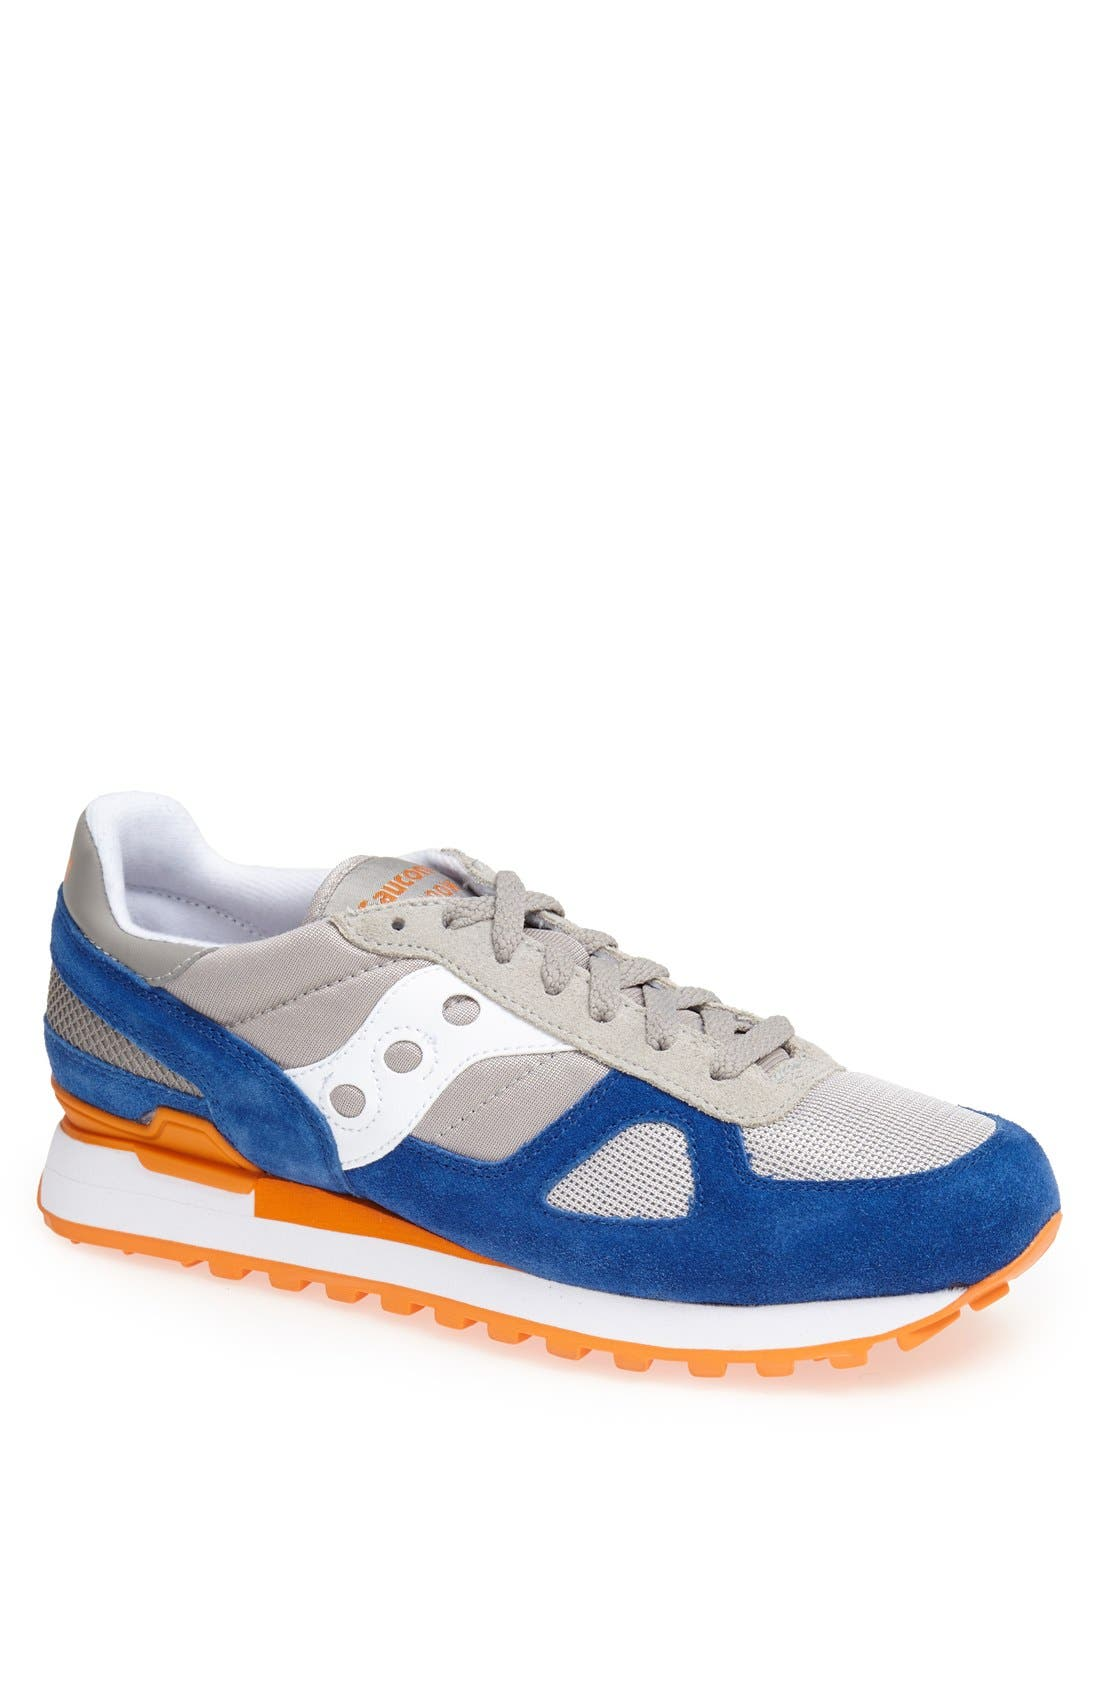 Main Image - Saucony 'Shadow Original' Sneaker (Men)